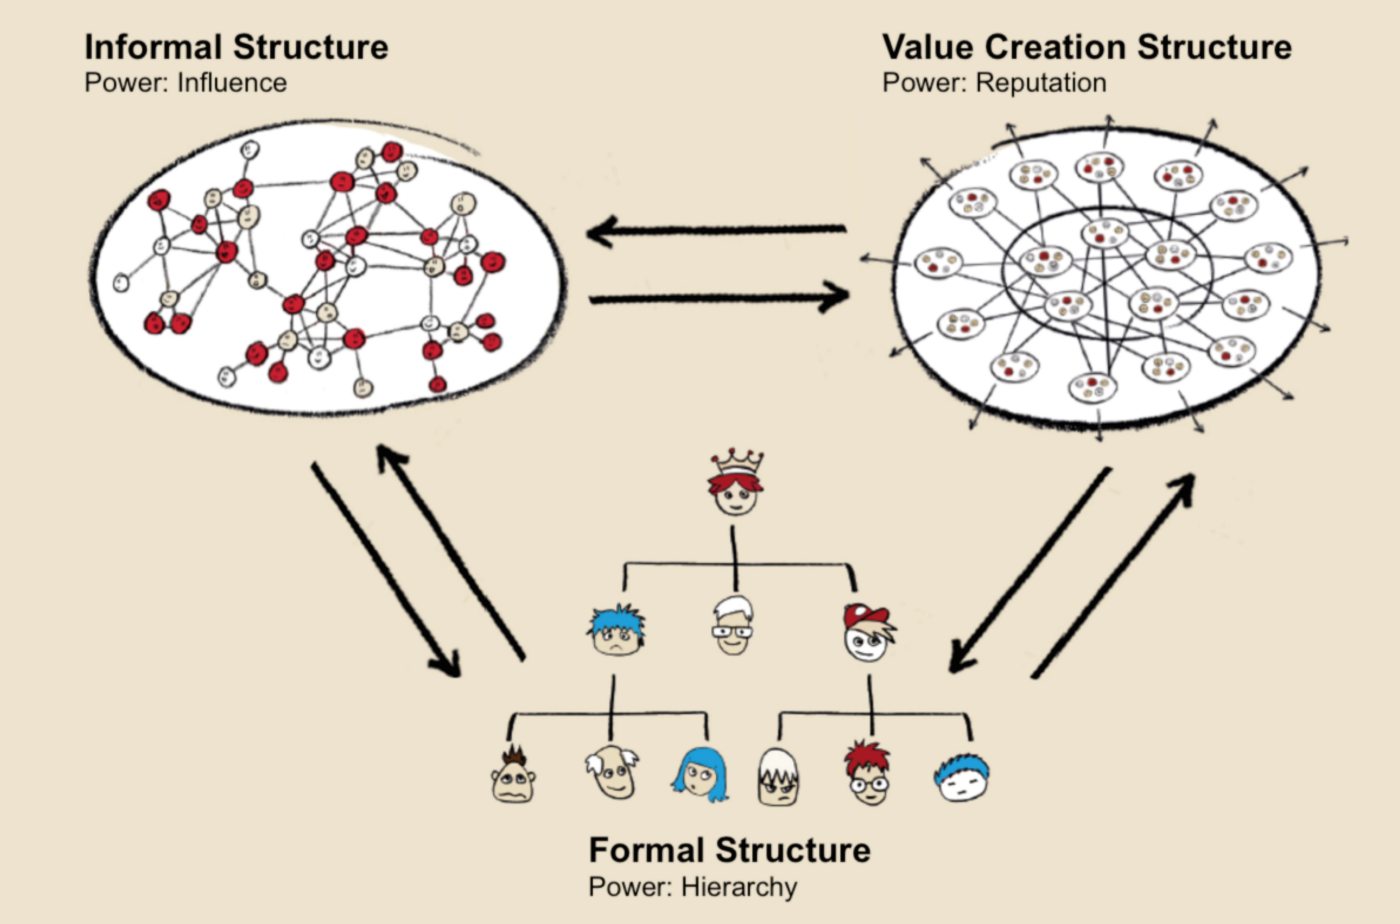 Formal Structure, Informal Structure, Value Creation Structure